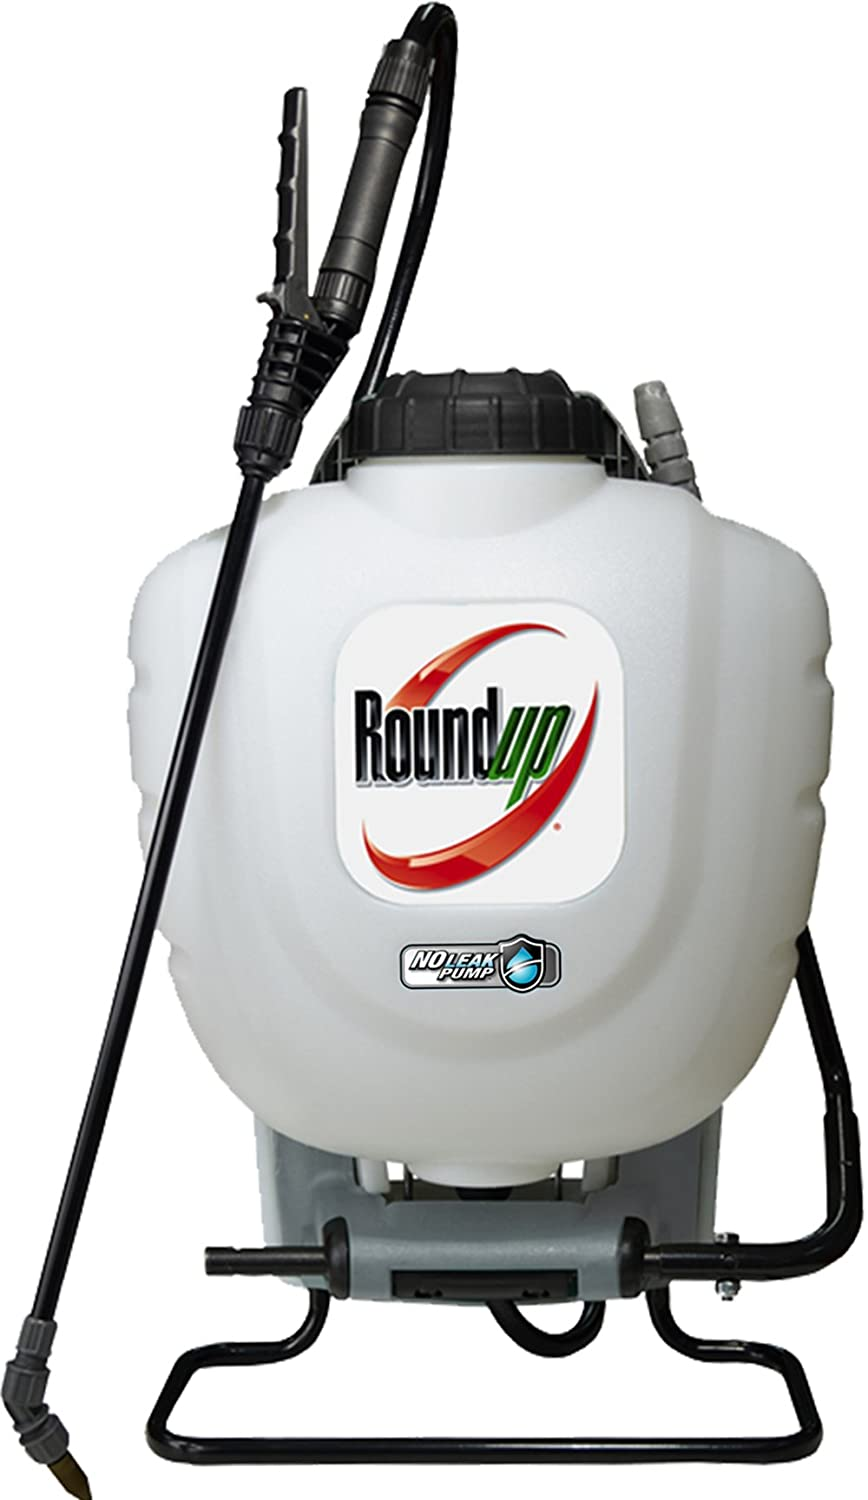 Roundup Pump Backpack Sprayer